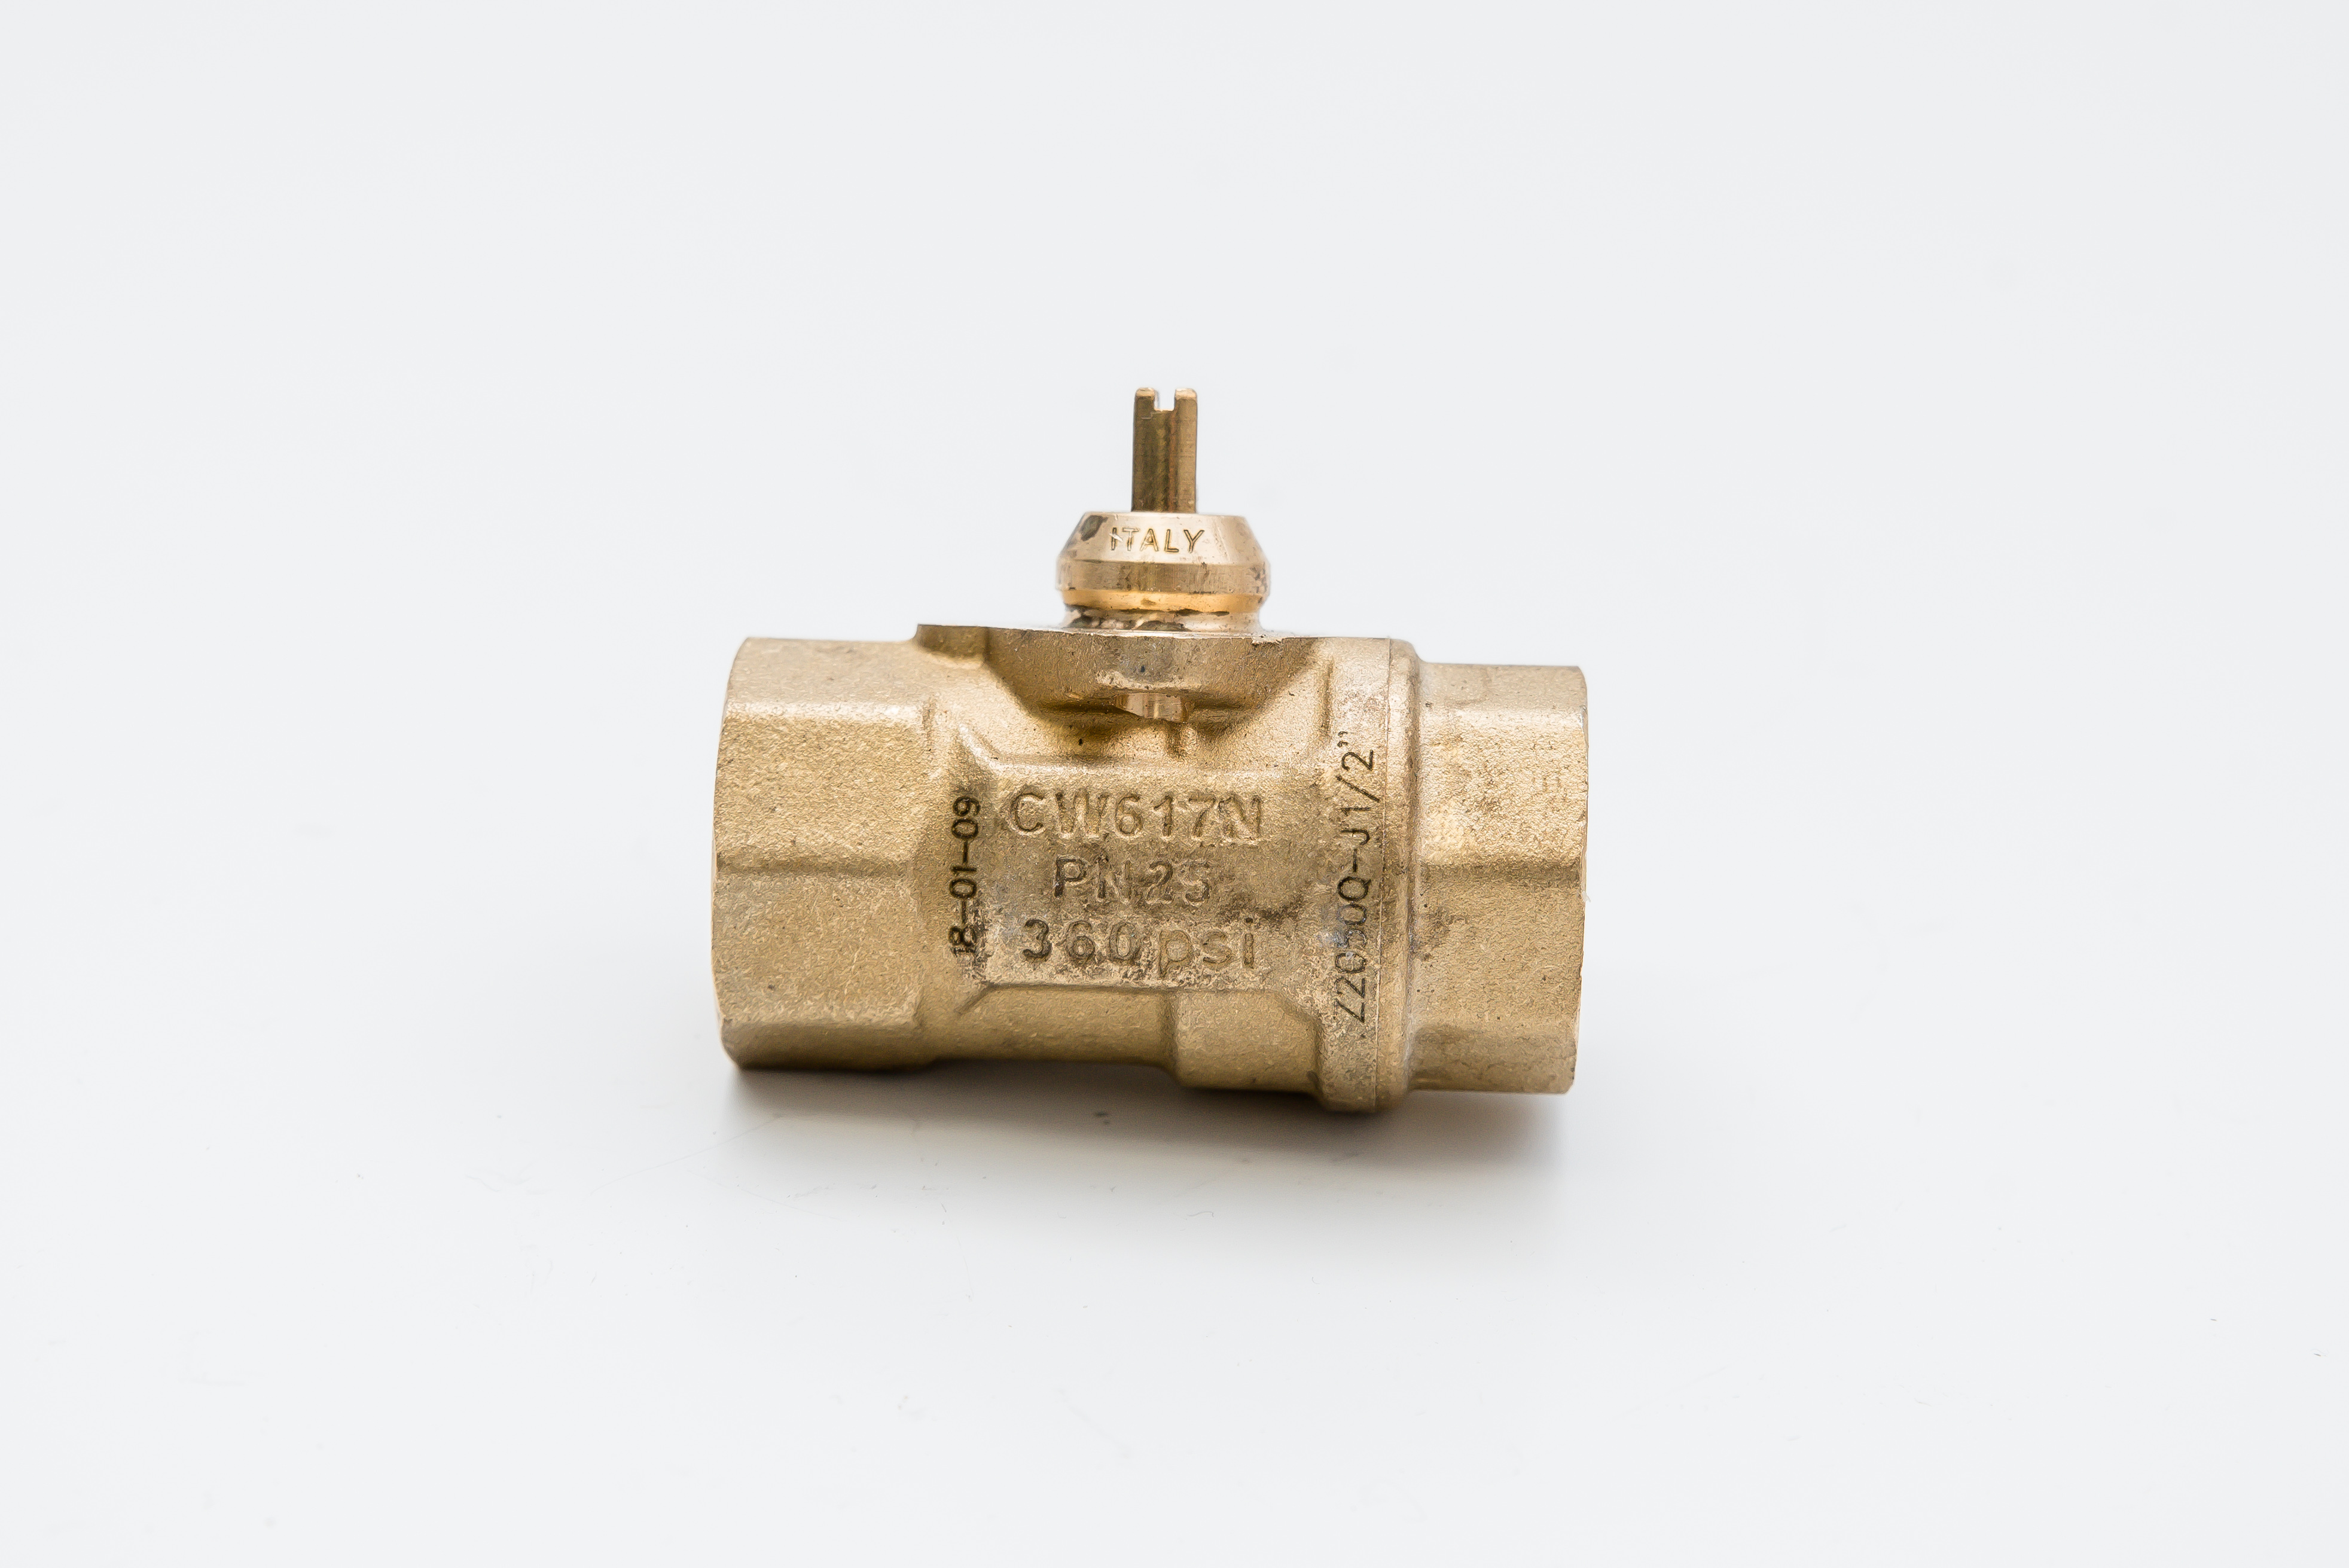 Belimo 2 way valve threaded connection CW617N PN25 360 PSI